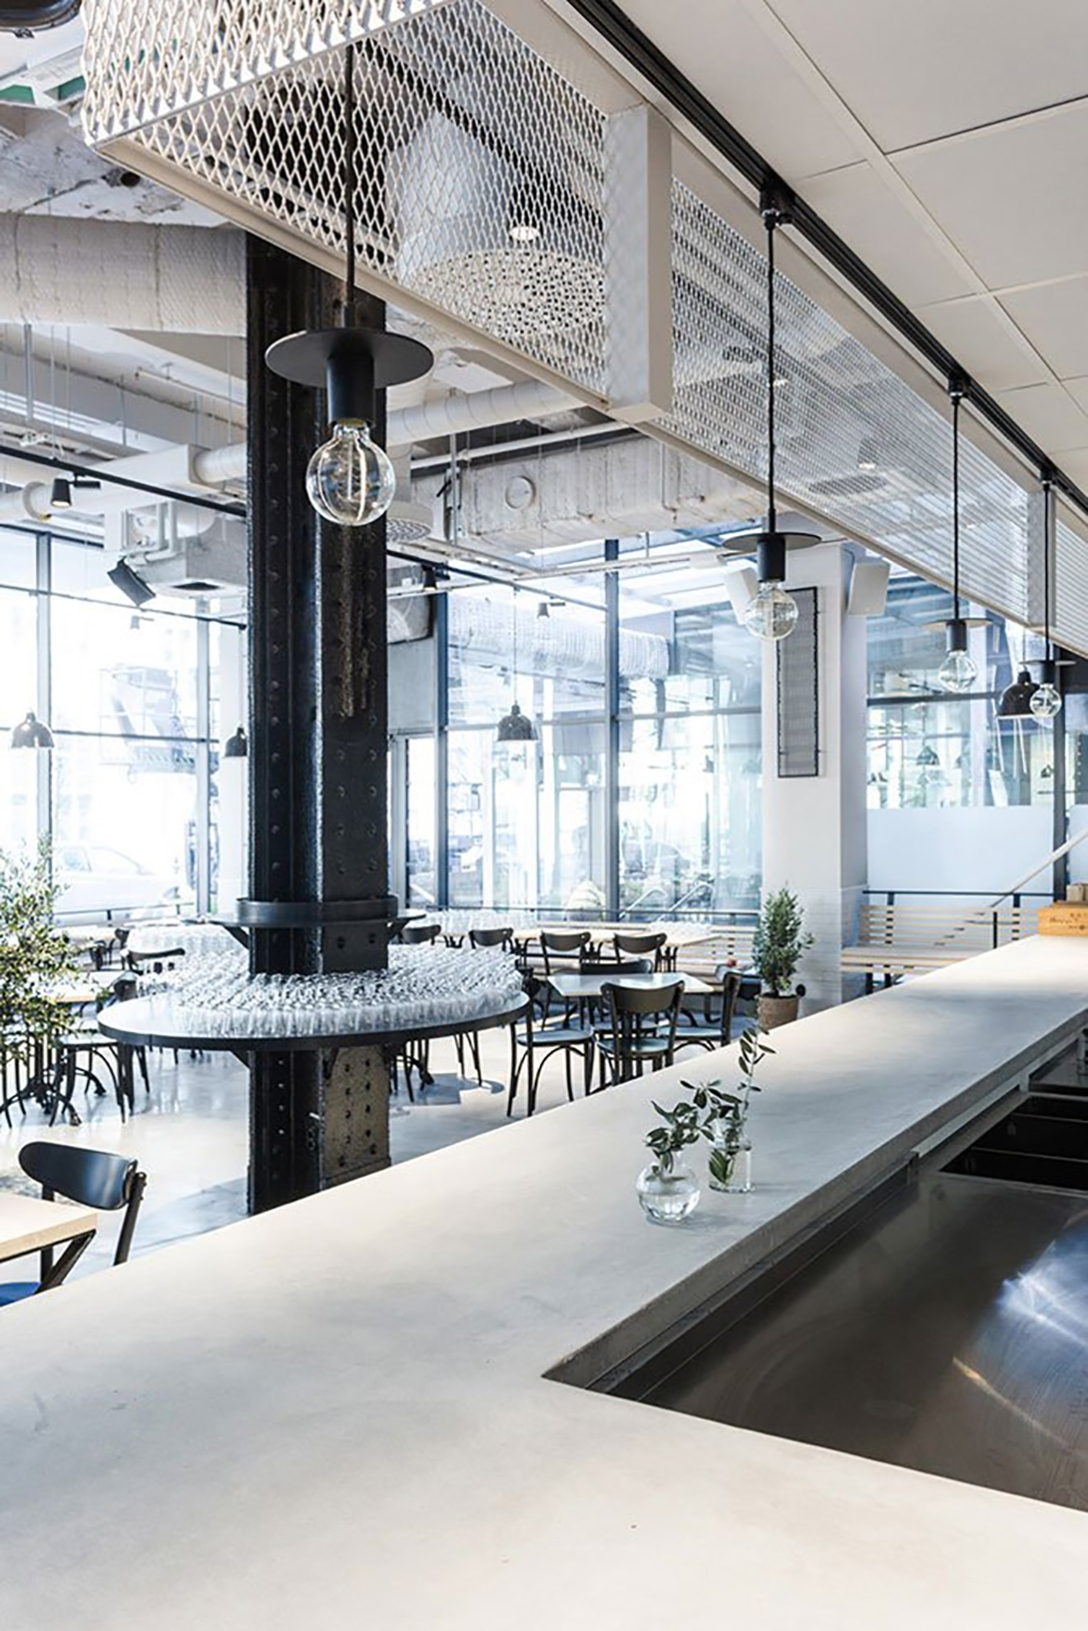 usine-restaurant-in-stockholm-by-richard-lindvall-yellowtrace-09